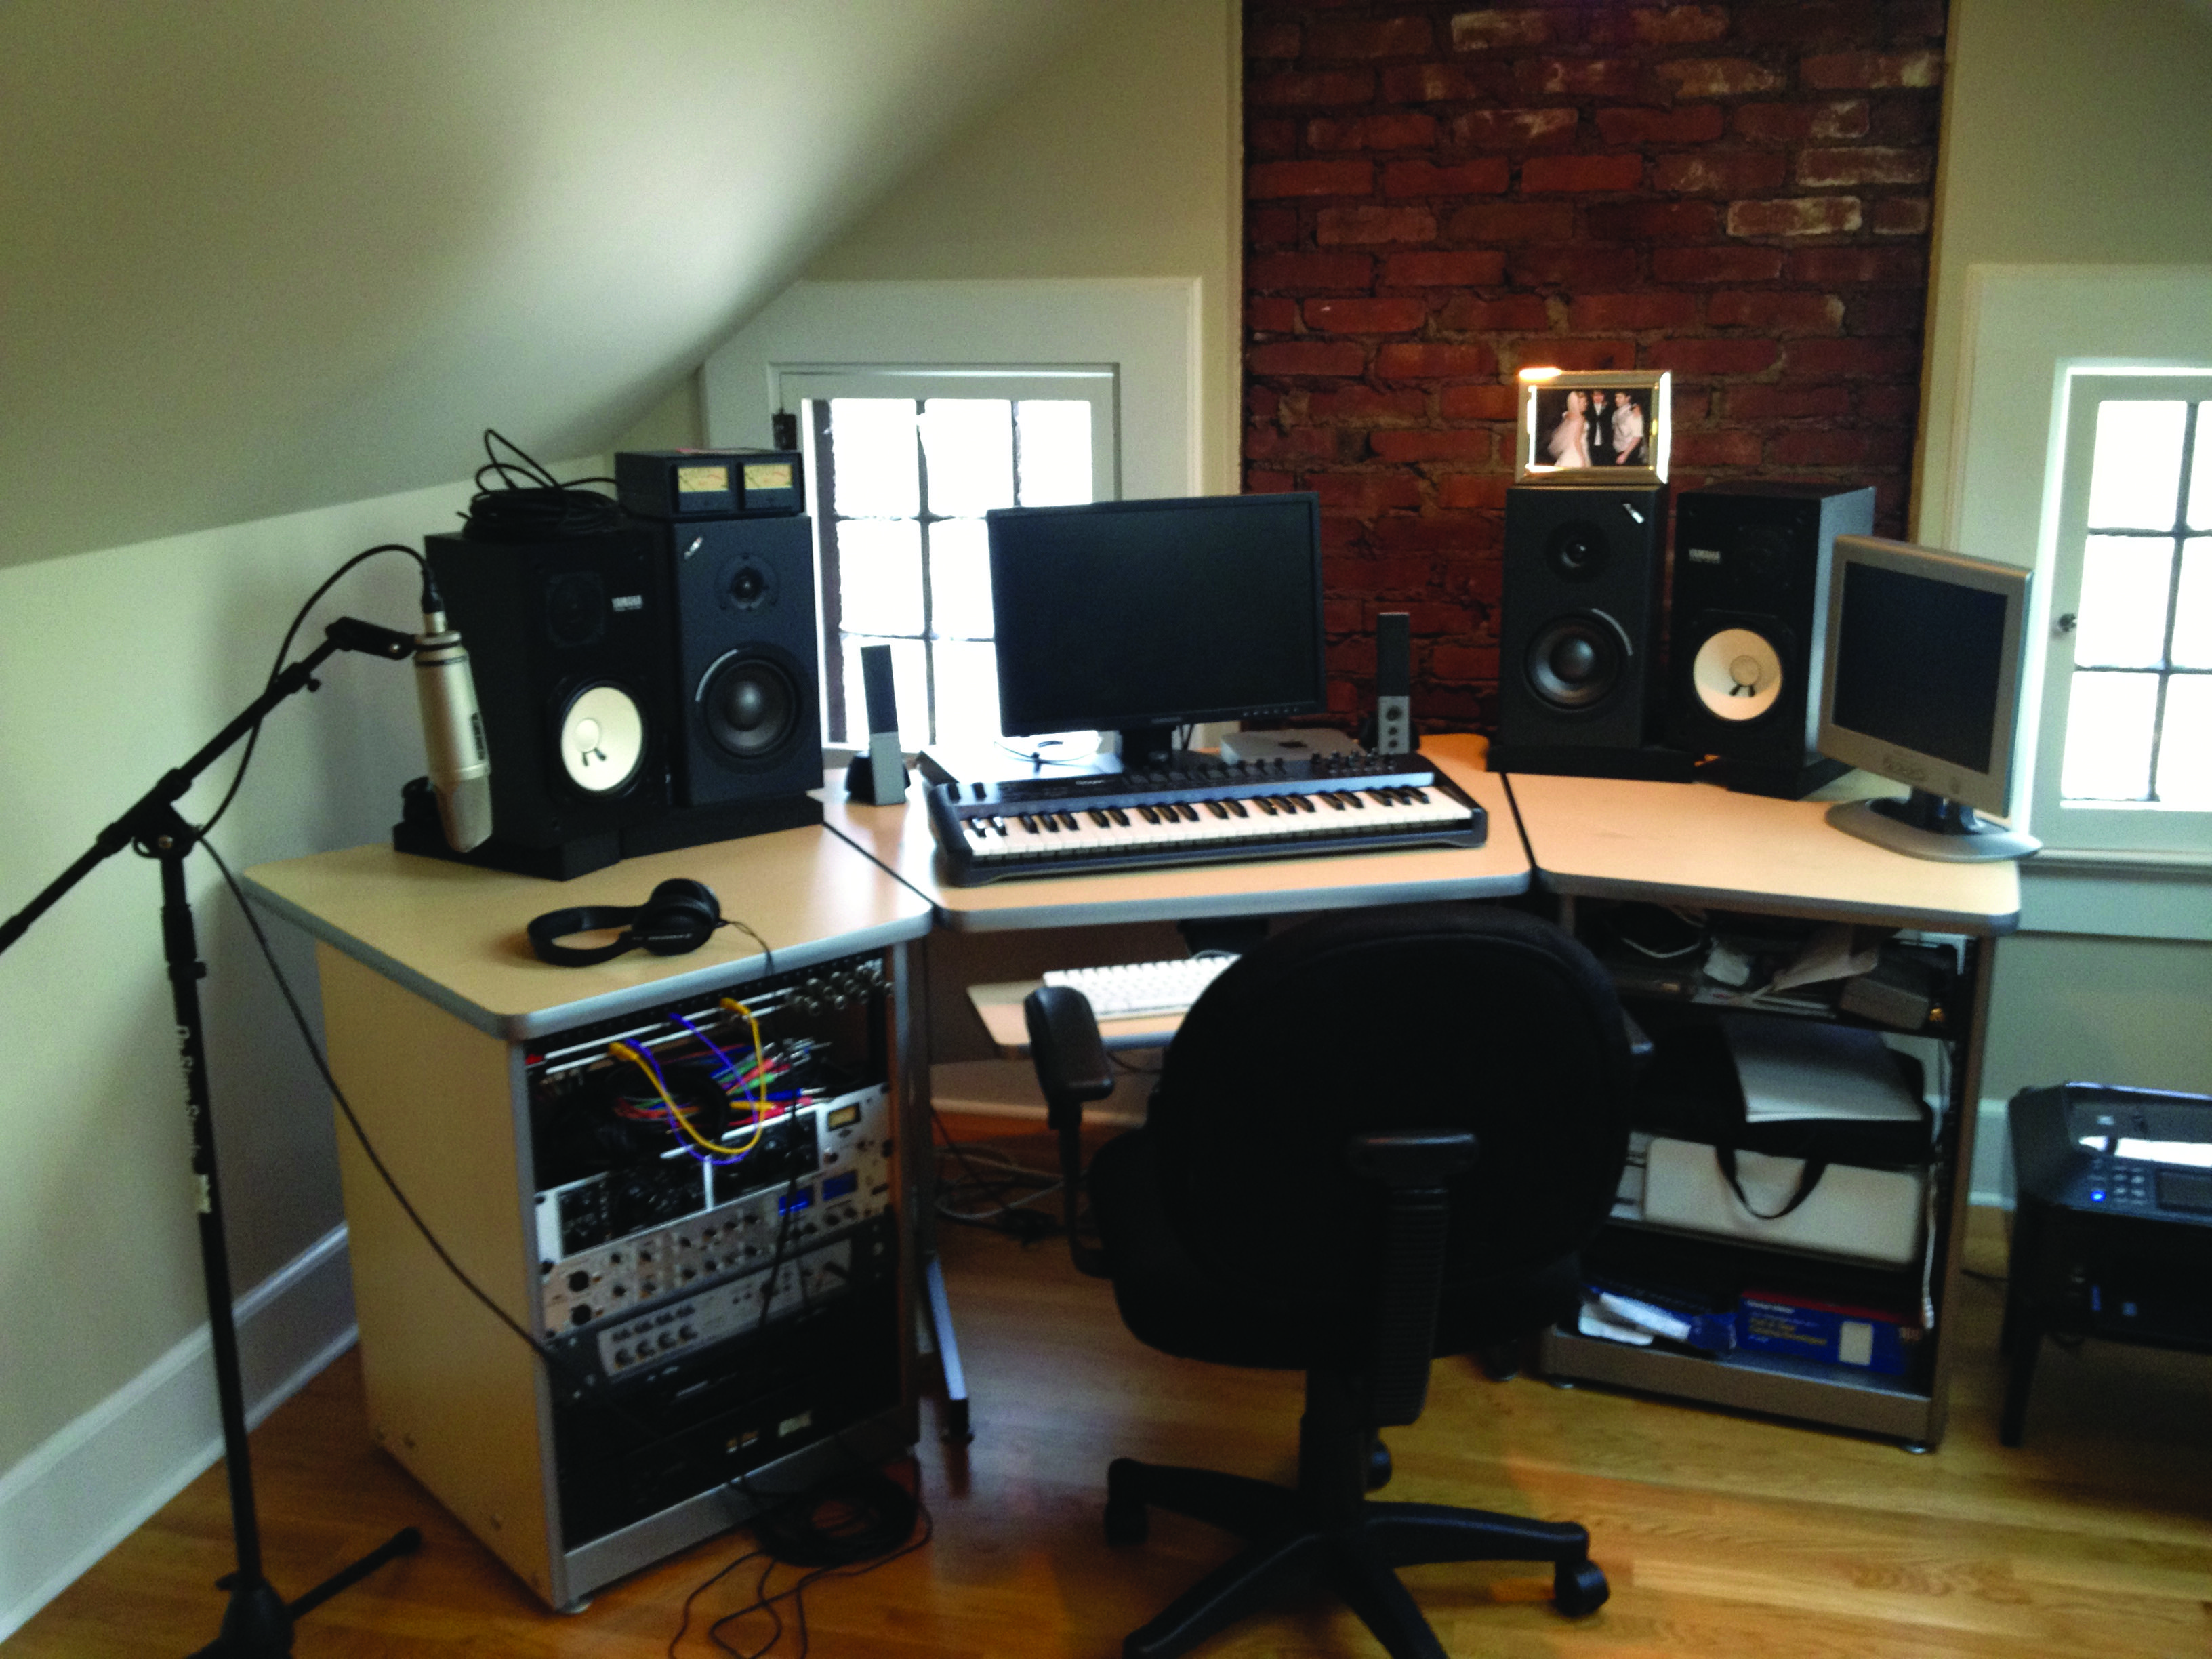 Ever wonder how to set up your own home recording studio